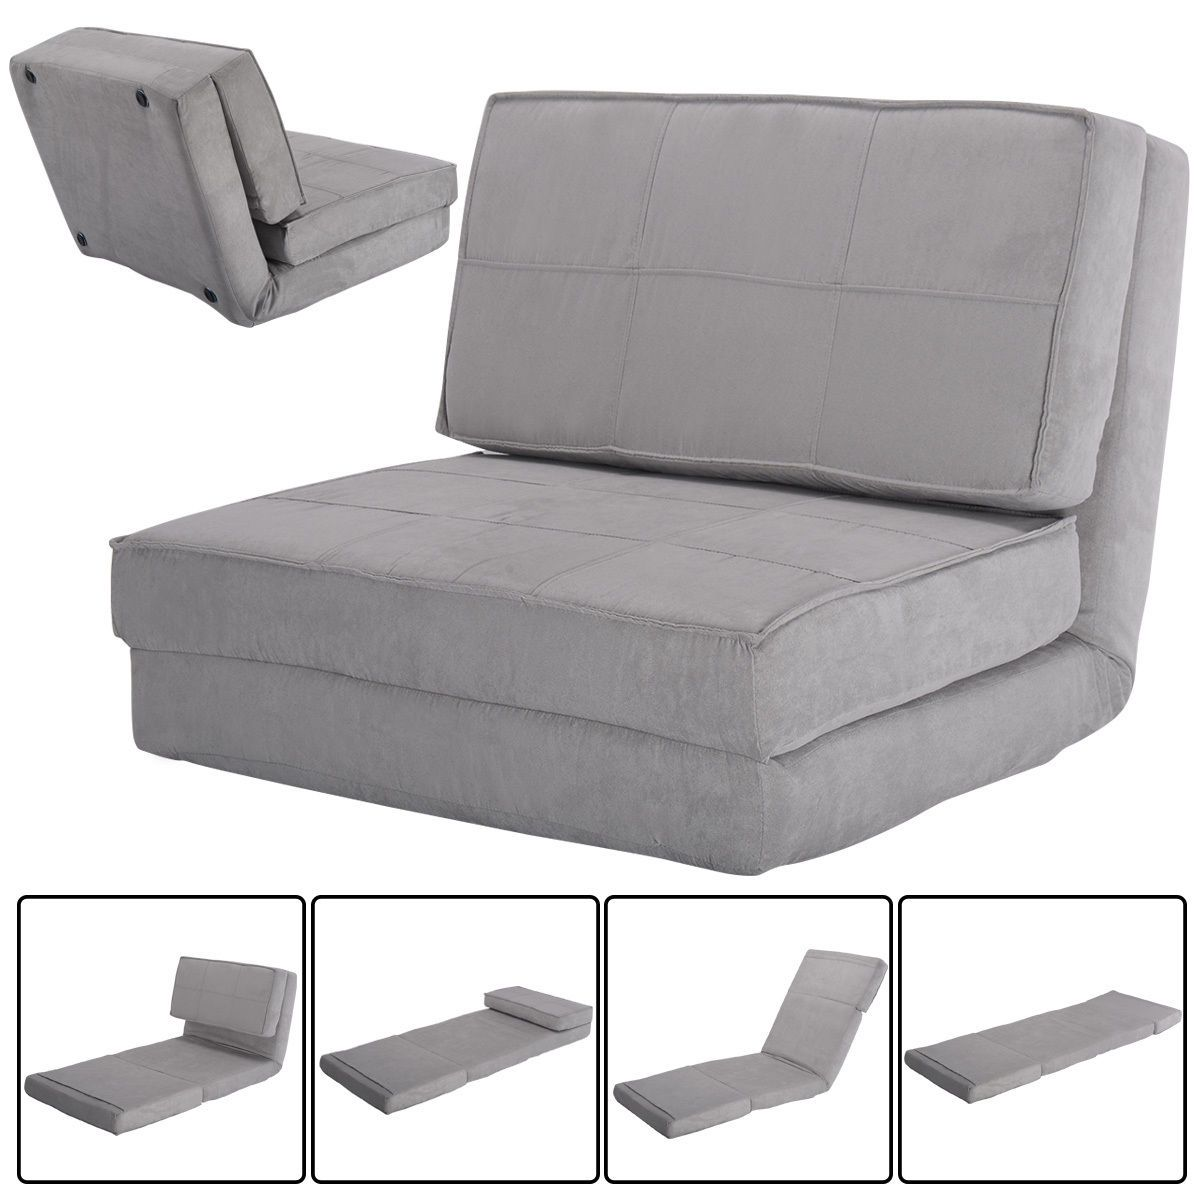 Convertible Lounger Folding Sofa Sleeper Bed With Images